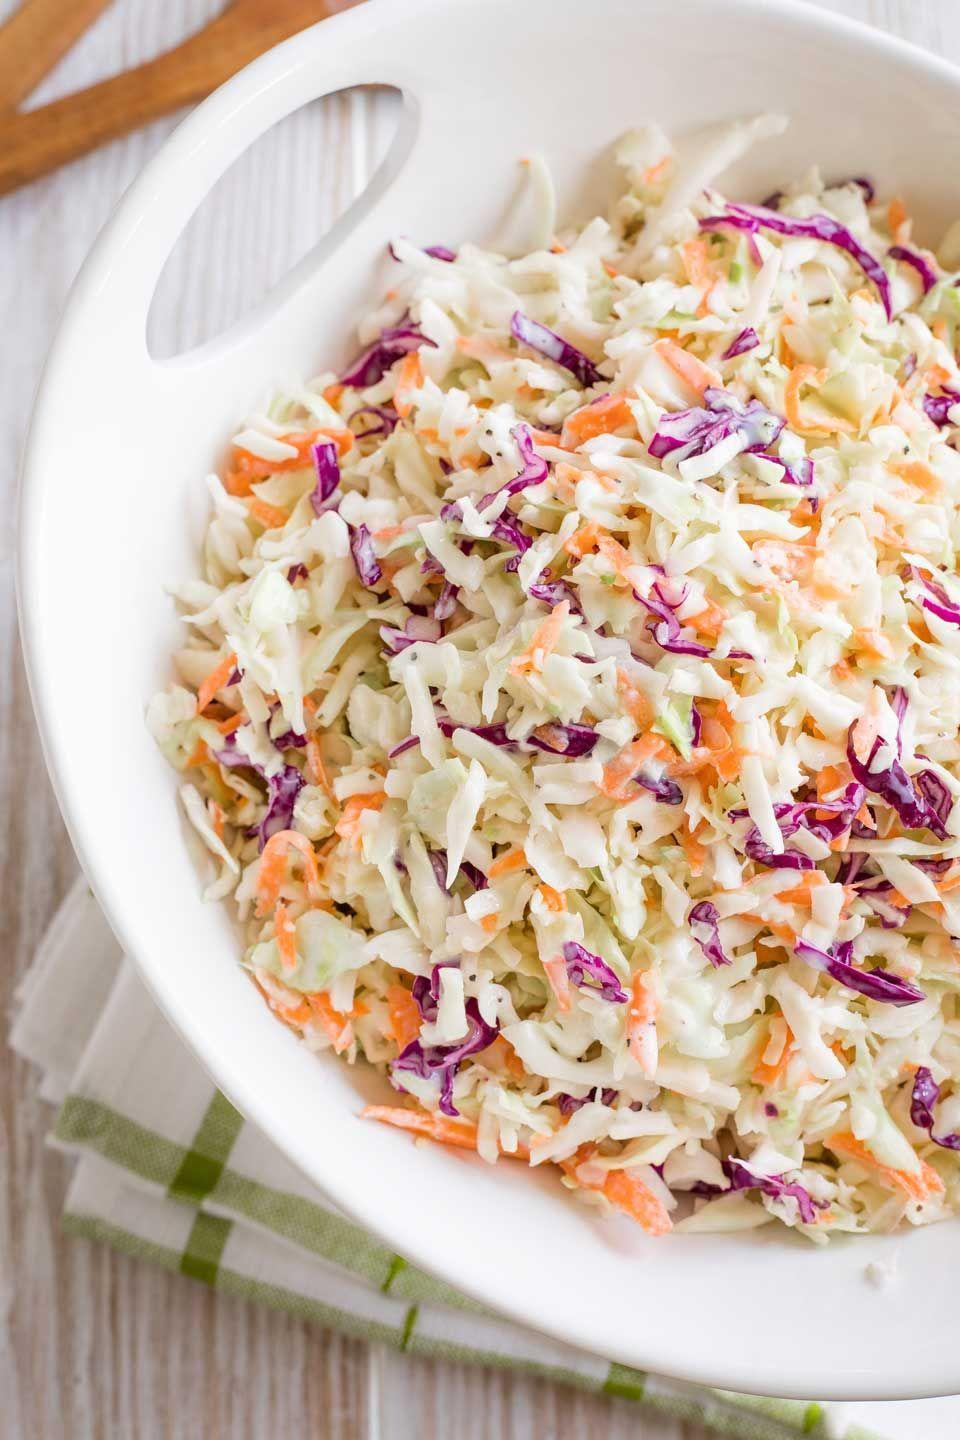 """<p>This recipe is proof that you don't have to slather summer salads—even classics like coleslaw—in mayo for them to be totally irresistible. </p><p><a href=""""https://twohealthykitchens.com/greek-yogurt-coleslaw/"""" rel=""""nofollow noopener"""" target=""""_blank"""" data-ylk=""""slk:Get the recipe."""" class=""""link rapid-noclick-resp"""">Get the recipe. </a></p>"""